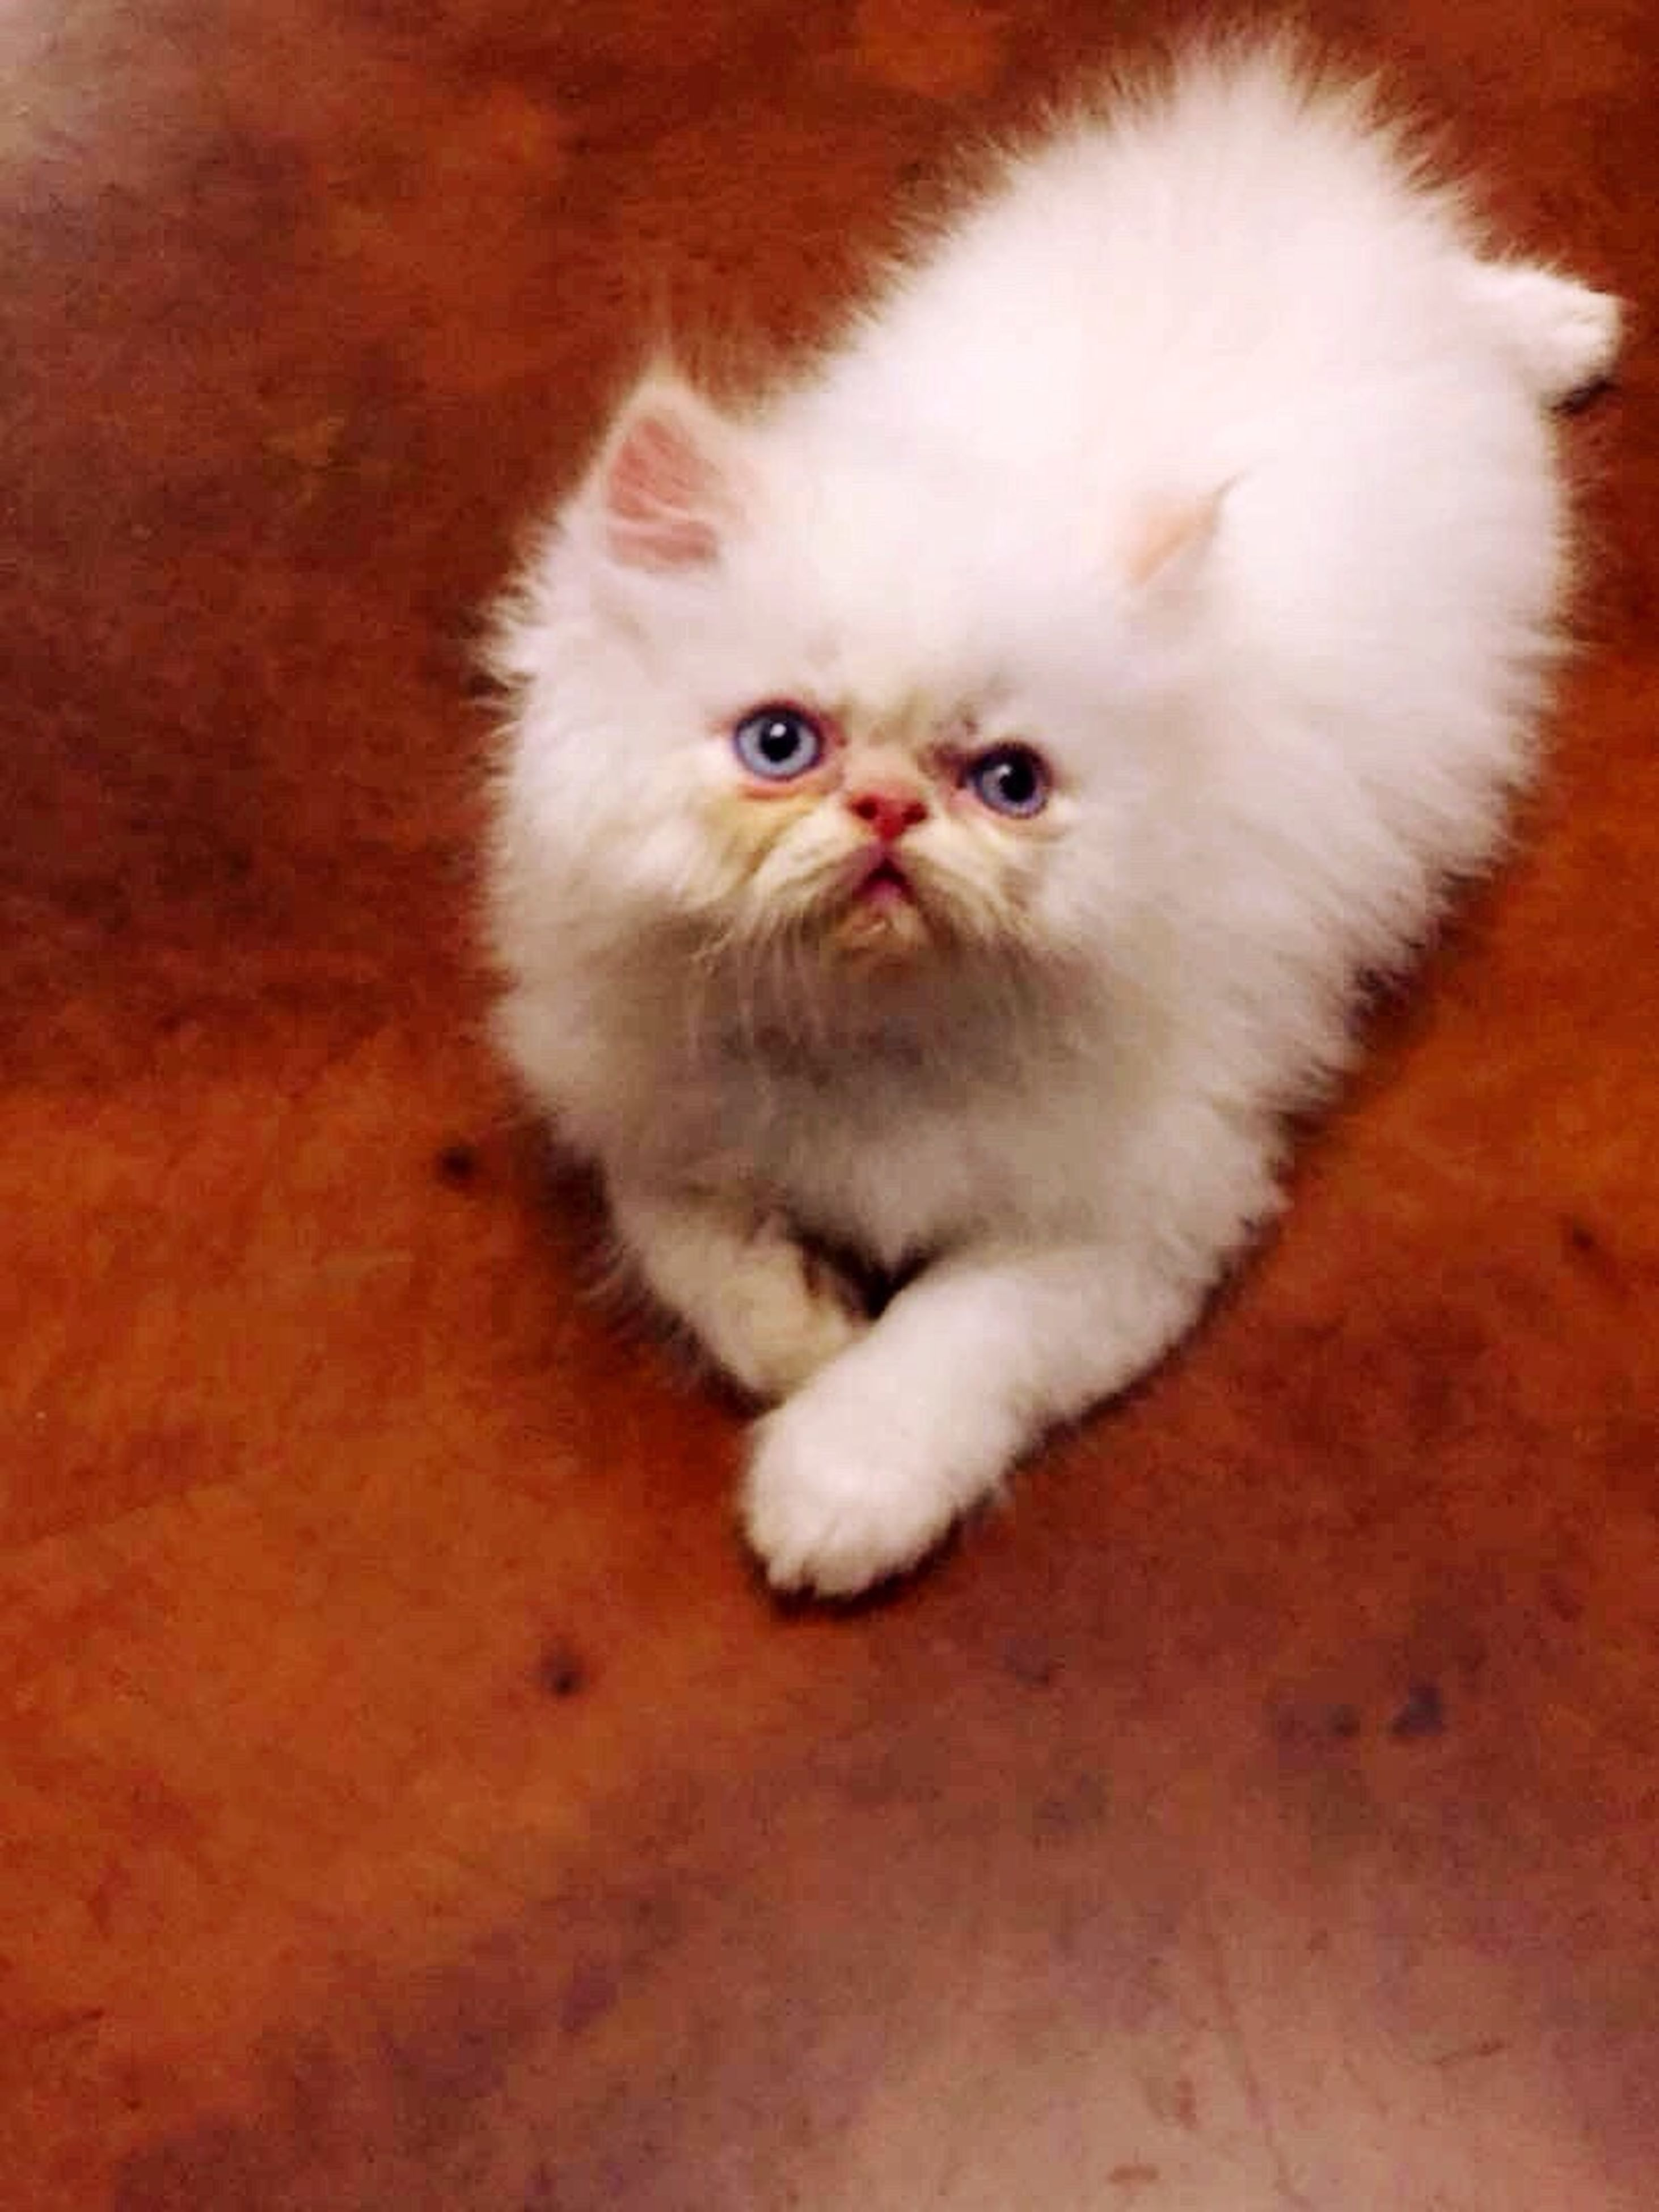 domestic cat, feline, pets, domestic animals, one animal, mammal, indoors, animal themes, whisker, portrait, looking at camera, persian cat, close-up, no people, day